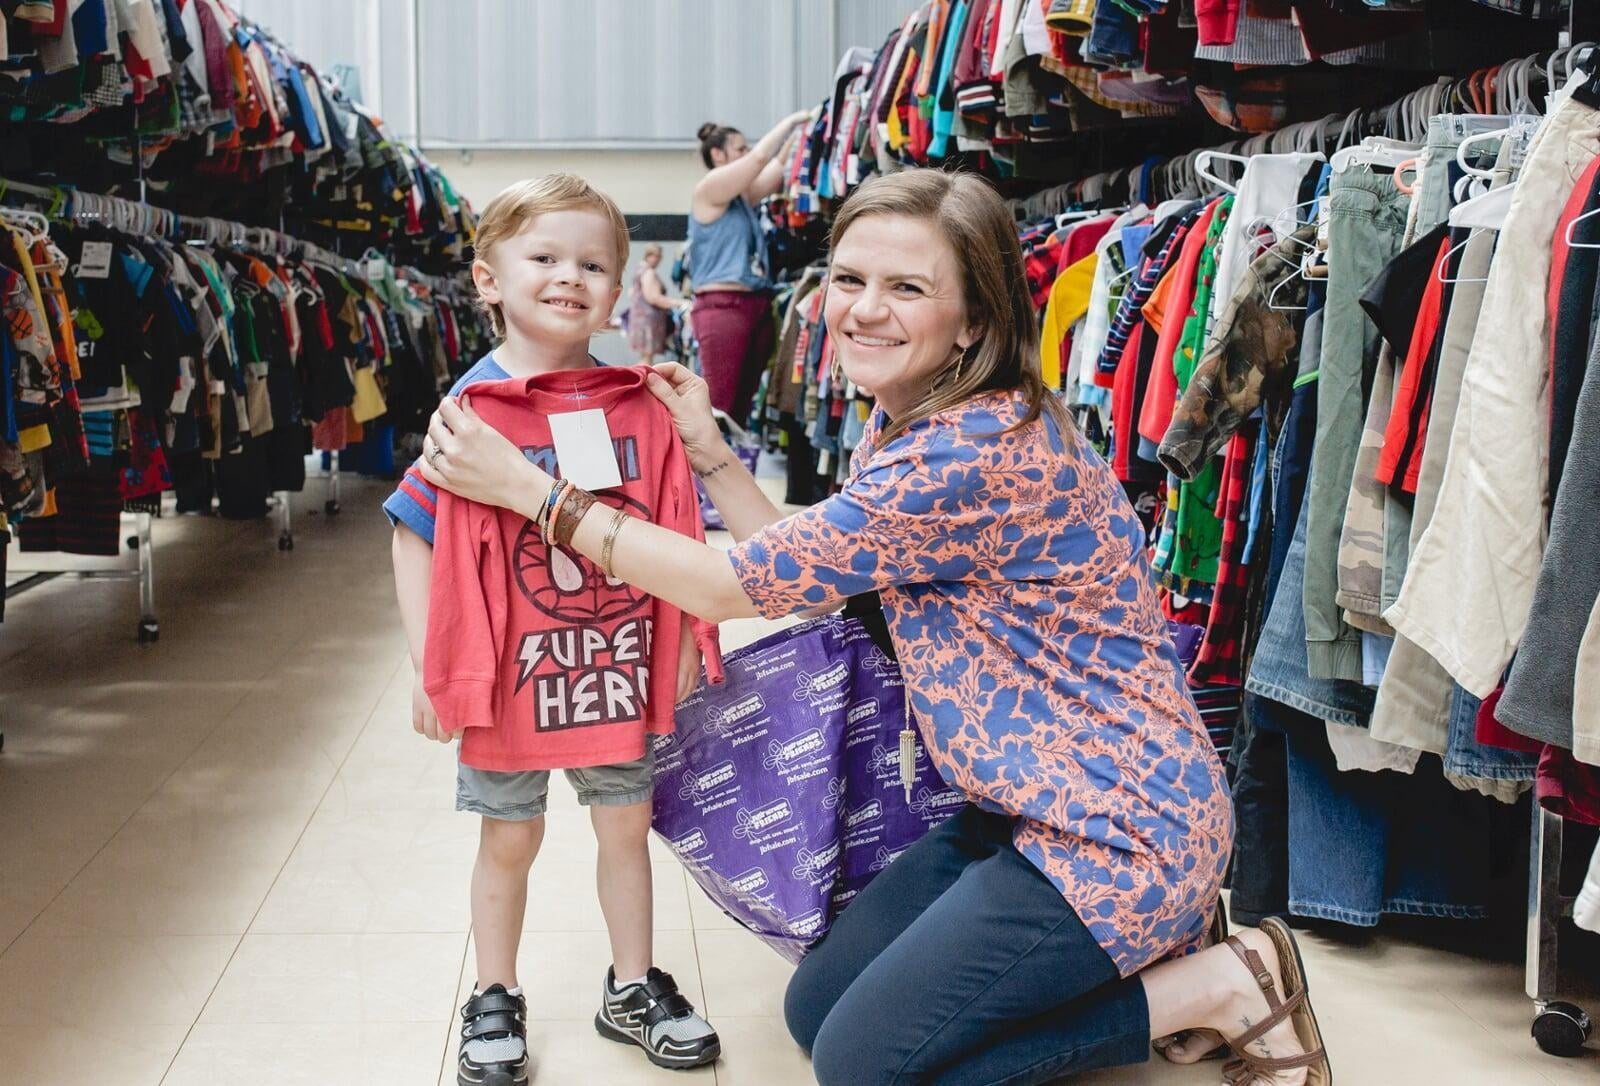 A mom with a large JBF shopping bag on her shoulder stands beside her husband who wears their toddler at a JBF sale.